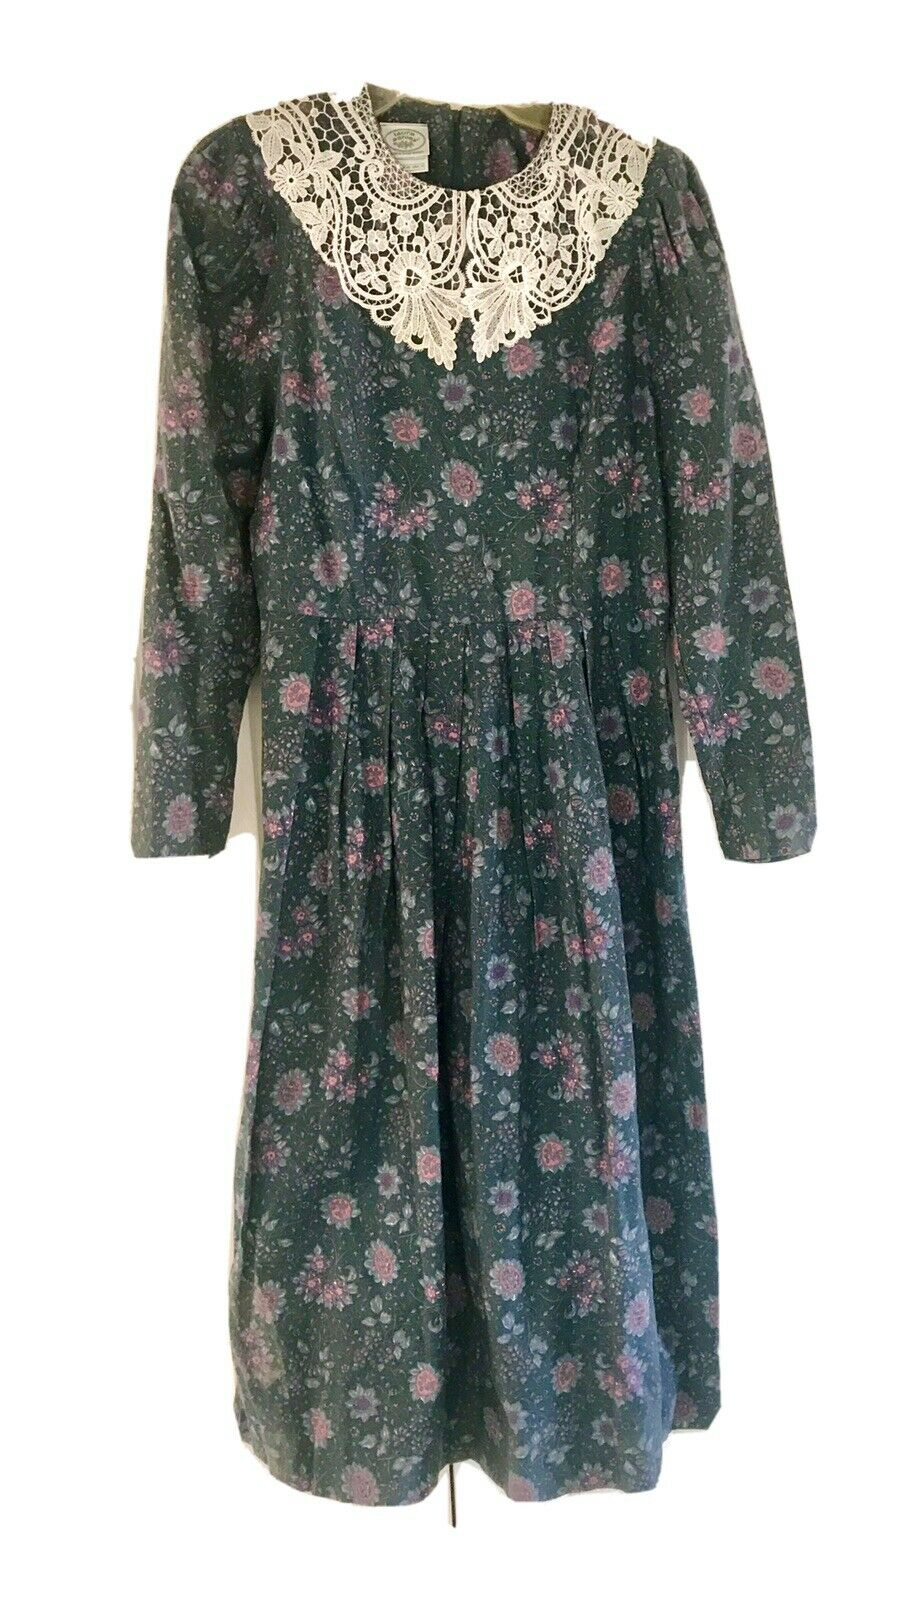 Vintage Laura Ashley 80s 90s Floral French Countr… - image 1